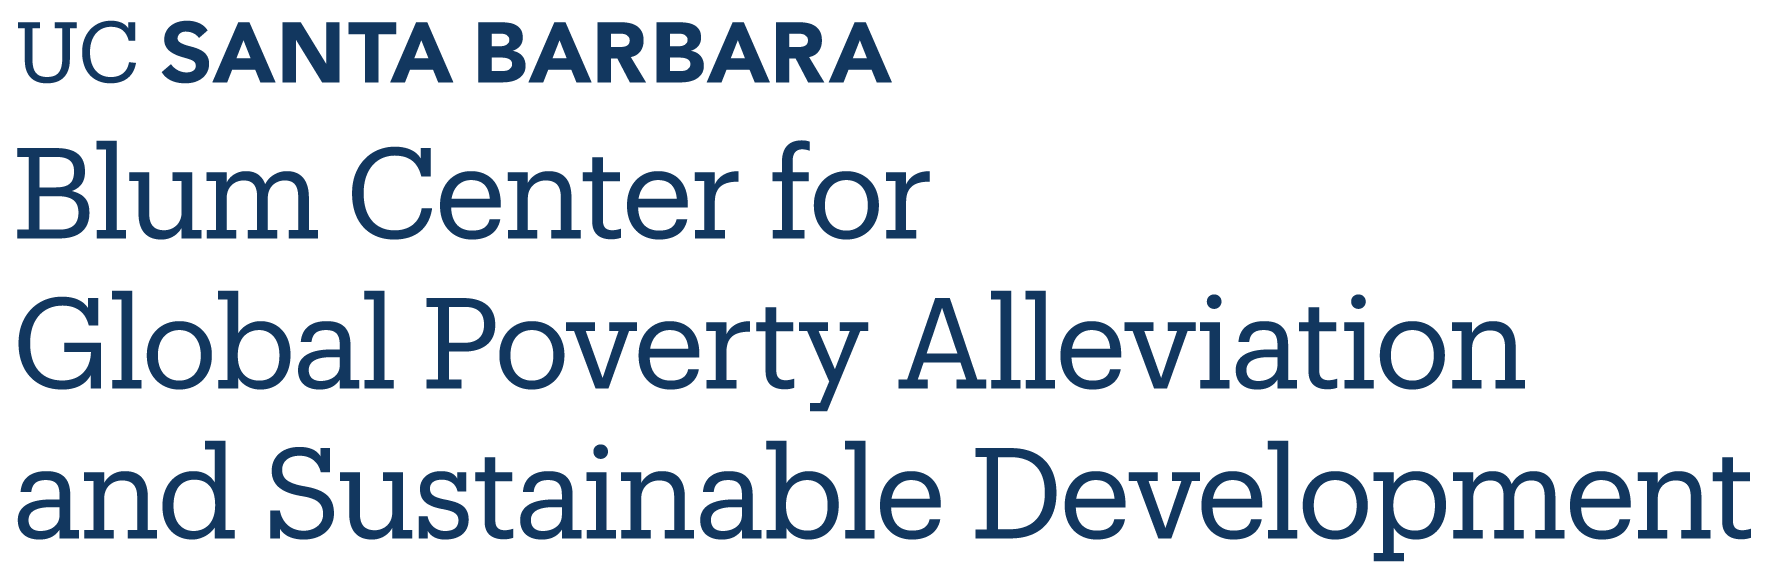 UCSB Blum Center for Global Poverty Alleviation and Sustainable Development - UC Santa Barbara